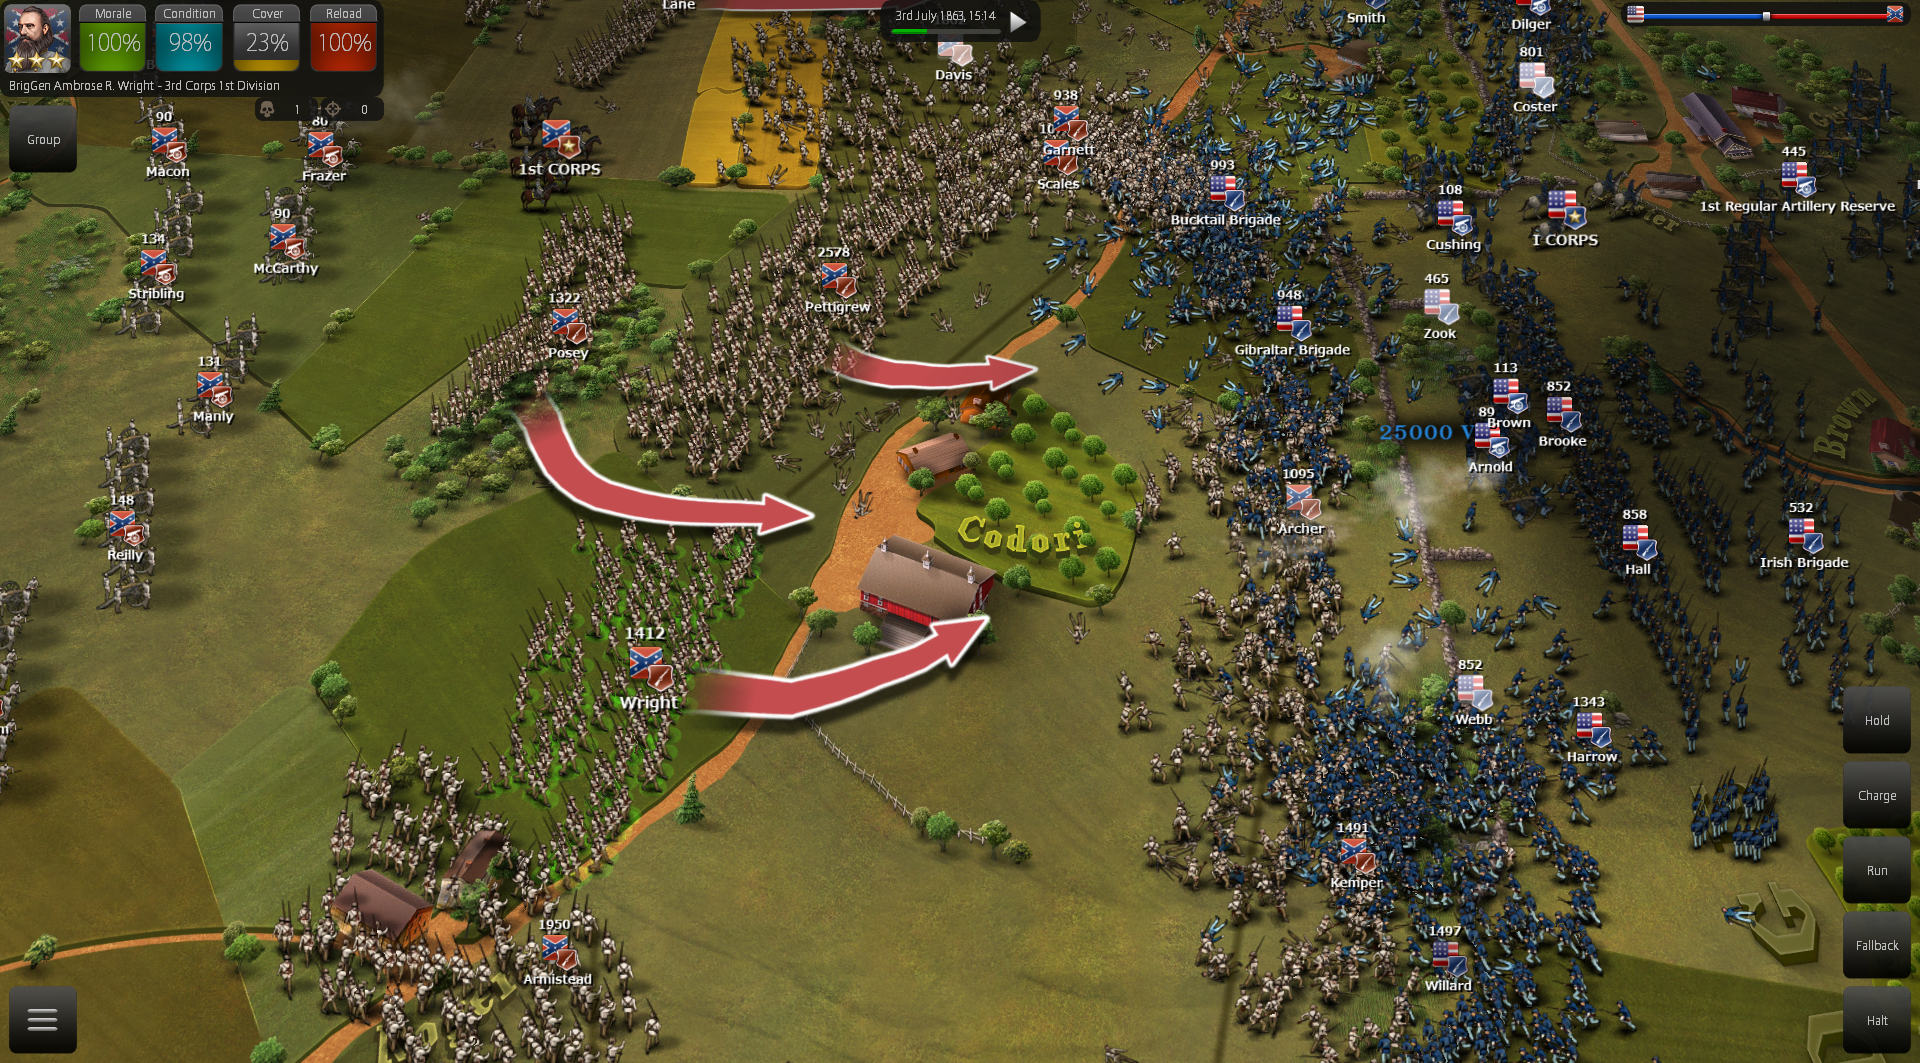 Melee looks now more chaotic and causes increased, more realistic damage. This gives to the CSA a proper impact when they charge but also Union can now defend more efficiently and have more chances for a successful counter-attack.